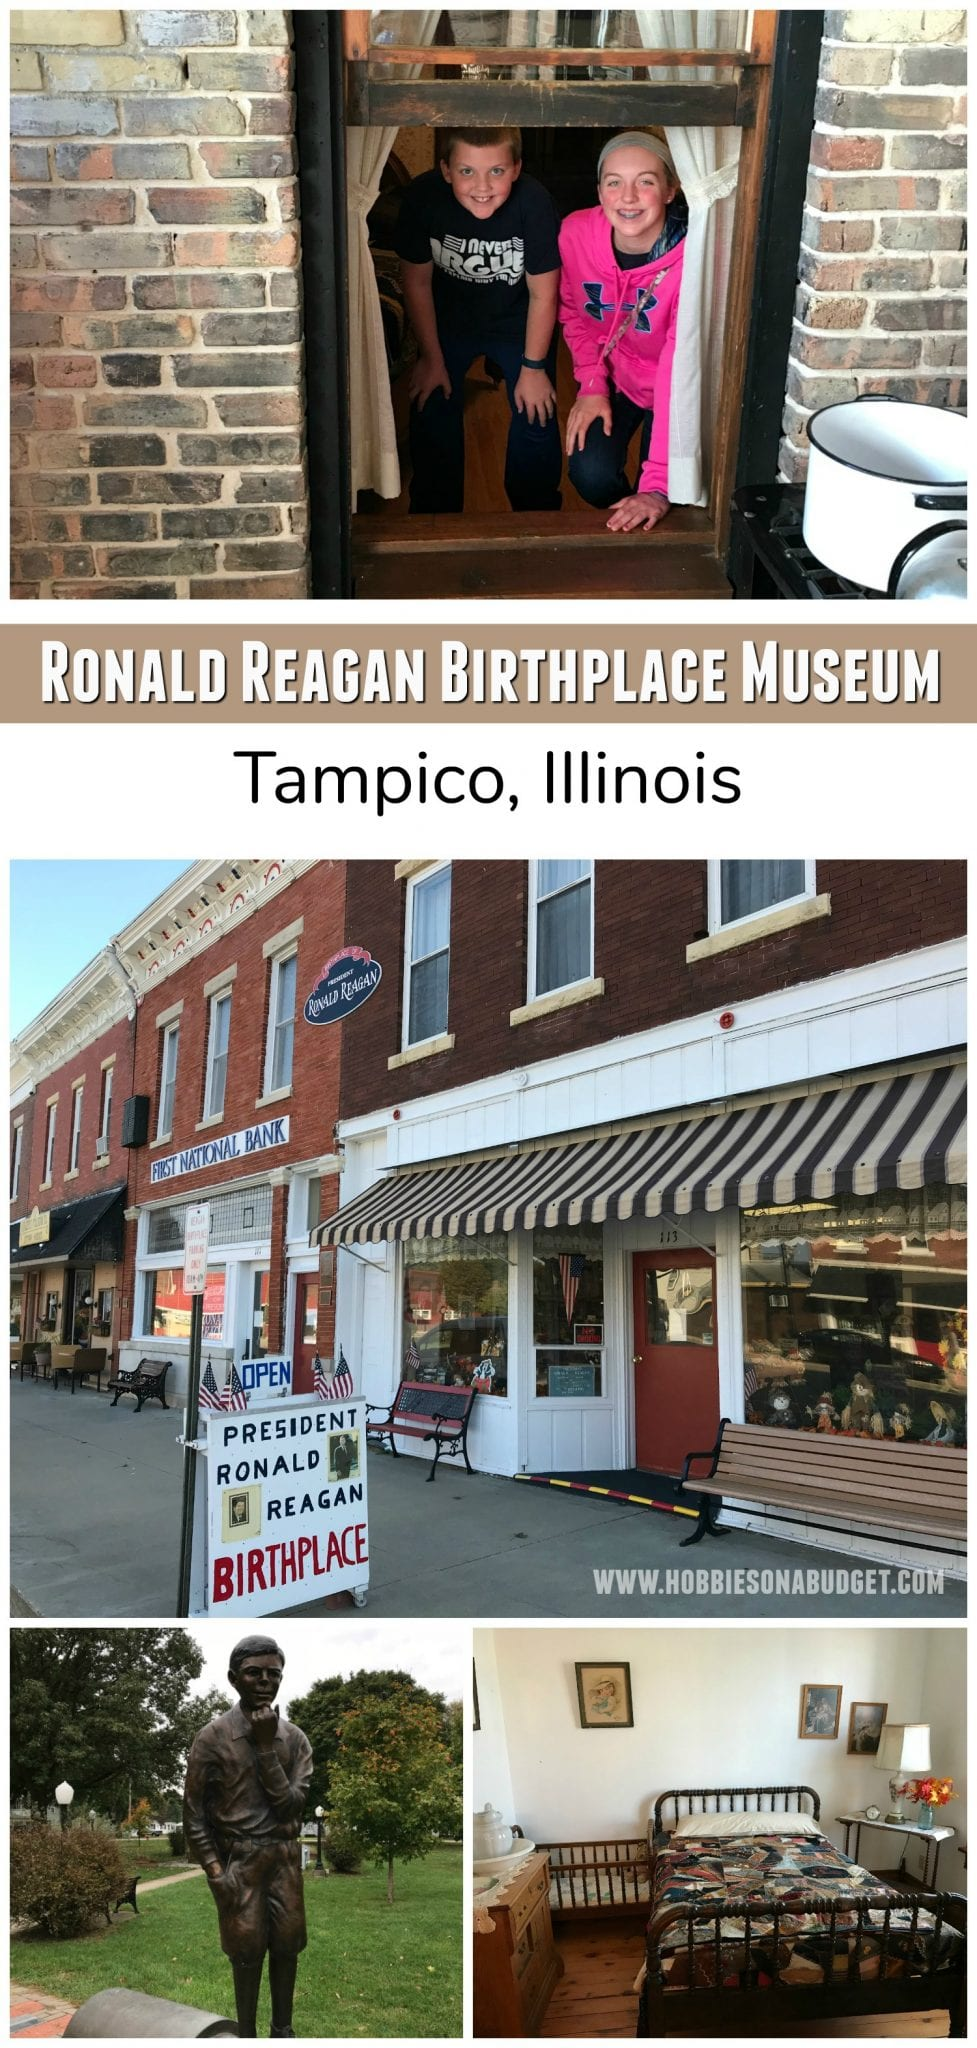 Learn about the early life of President Reagan at the President Ronald Reagan Birthplace Museum in the small Midwest town of Tampico, Illinois.